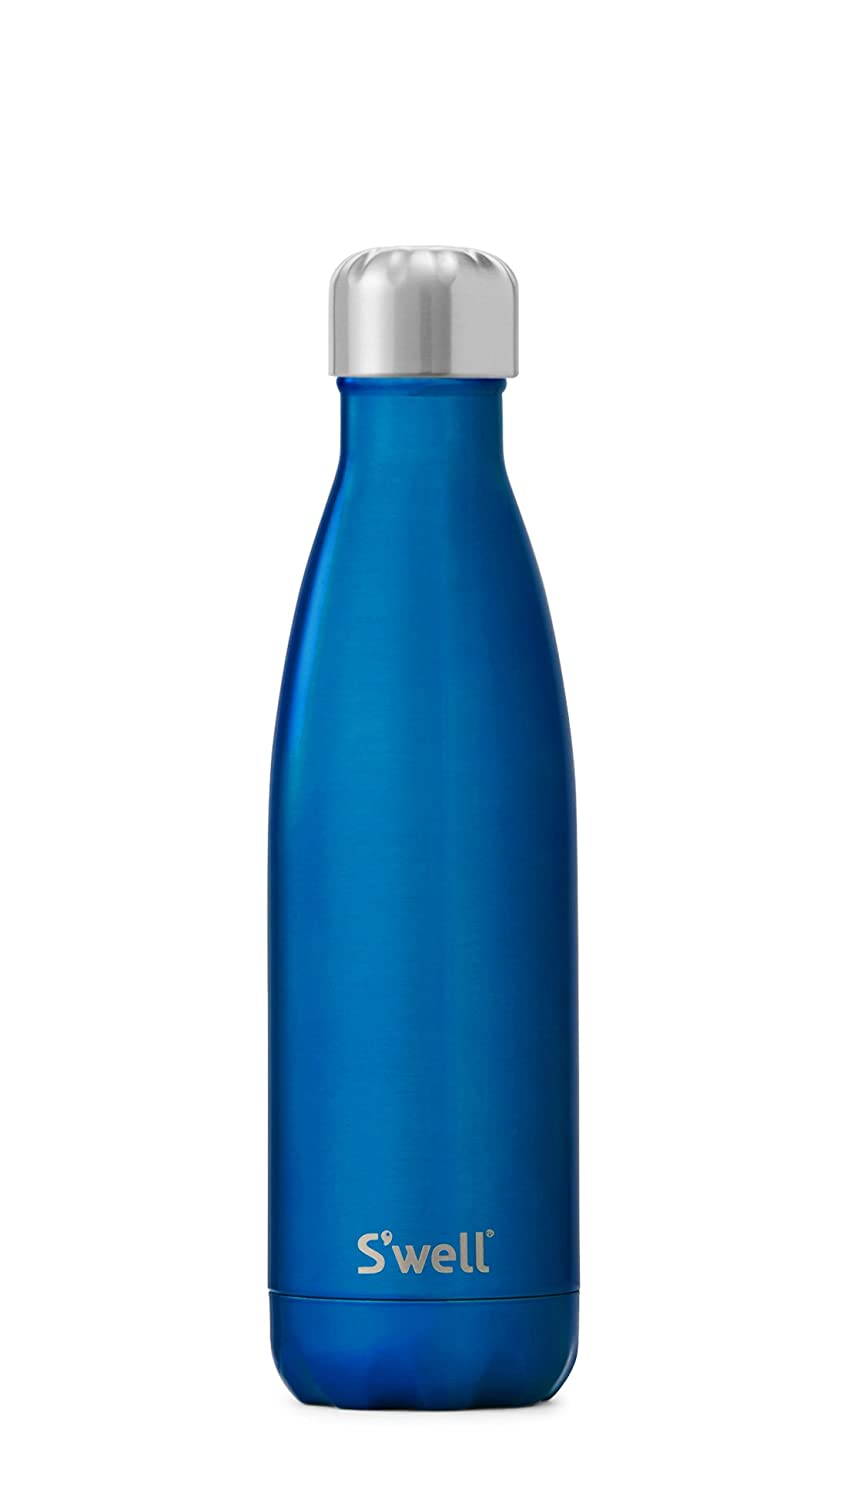 Ocean blueee 17 oz S'well Vacuum Insulated Stainless Steel Water Bottle S'well Vacuum Insulated Stainless Steel Water Bottle, 17 oz, Smokey Quartz 17 oz Smokey Quartz